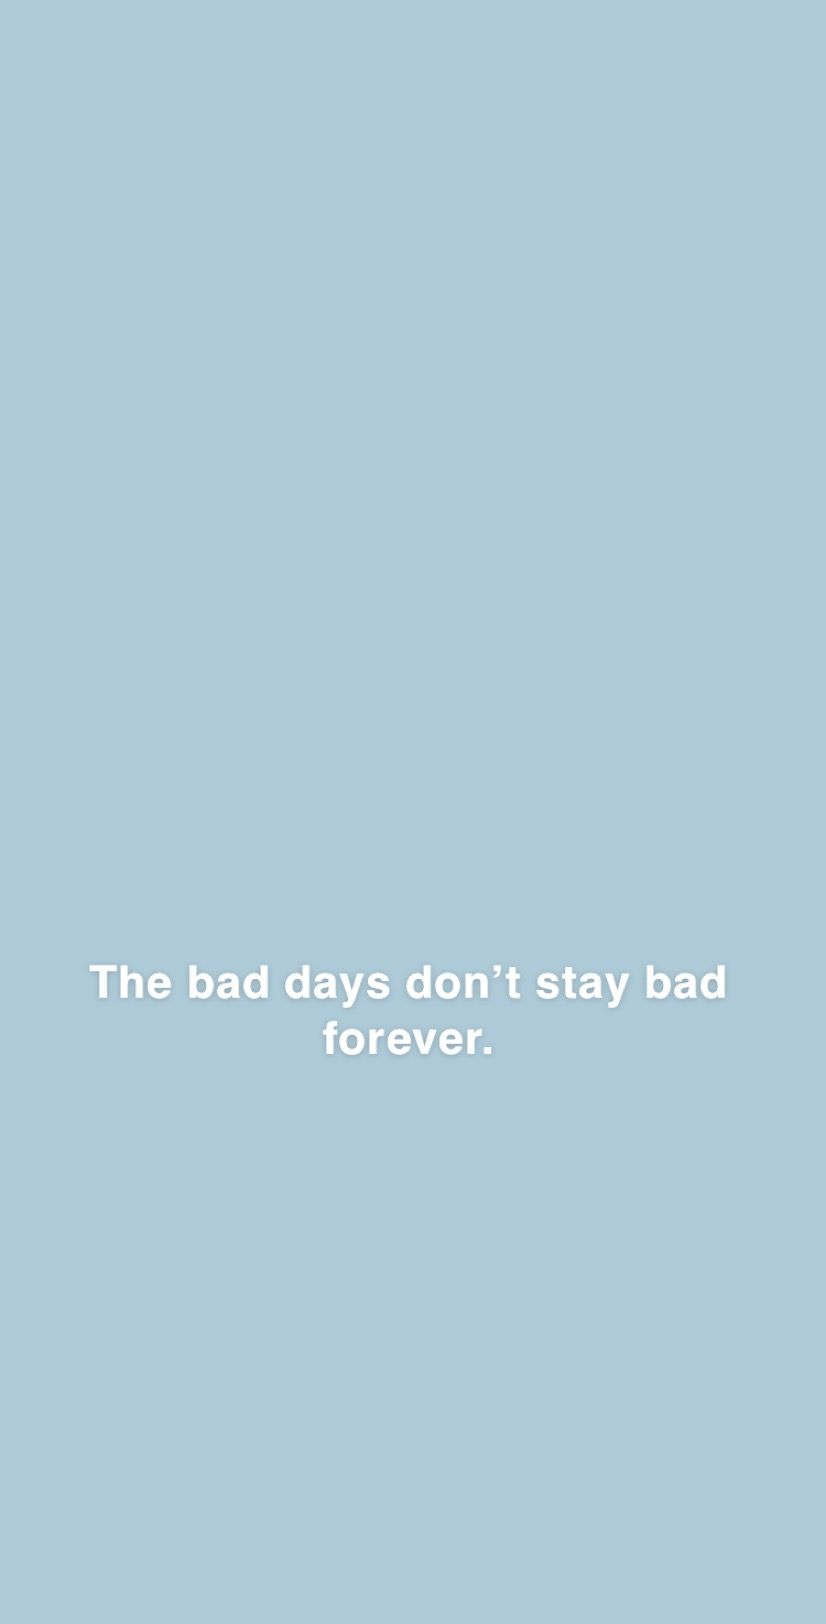 Light Blue And White Aesthetic Quote Wallpaper Wallpaper Quotes Iphone Wallpaper Images Quote Aesthetic